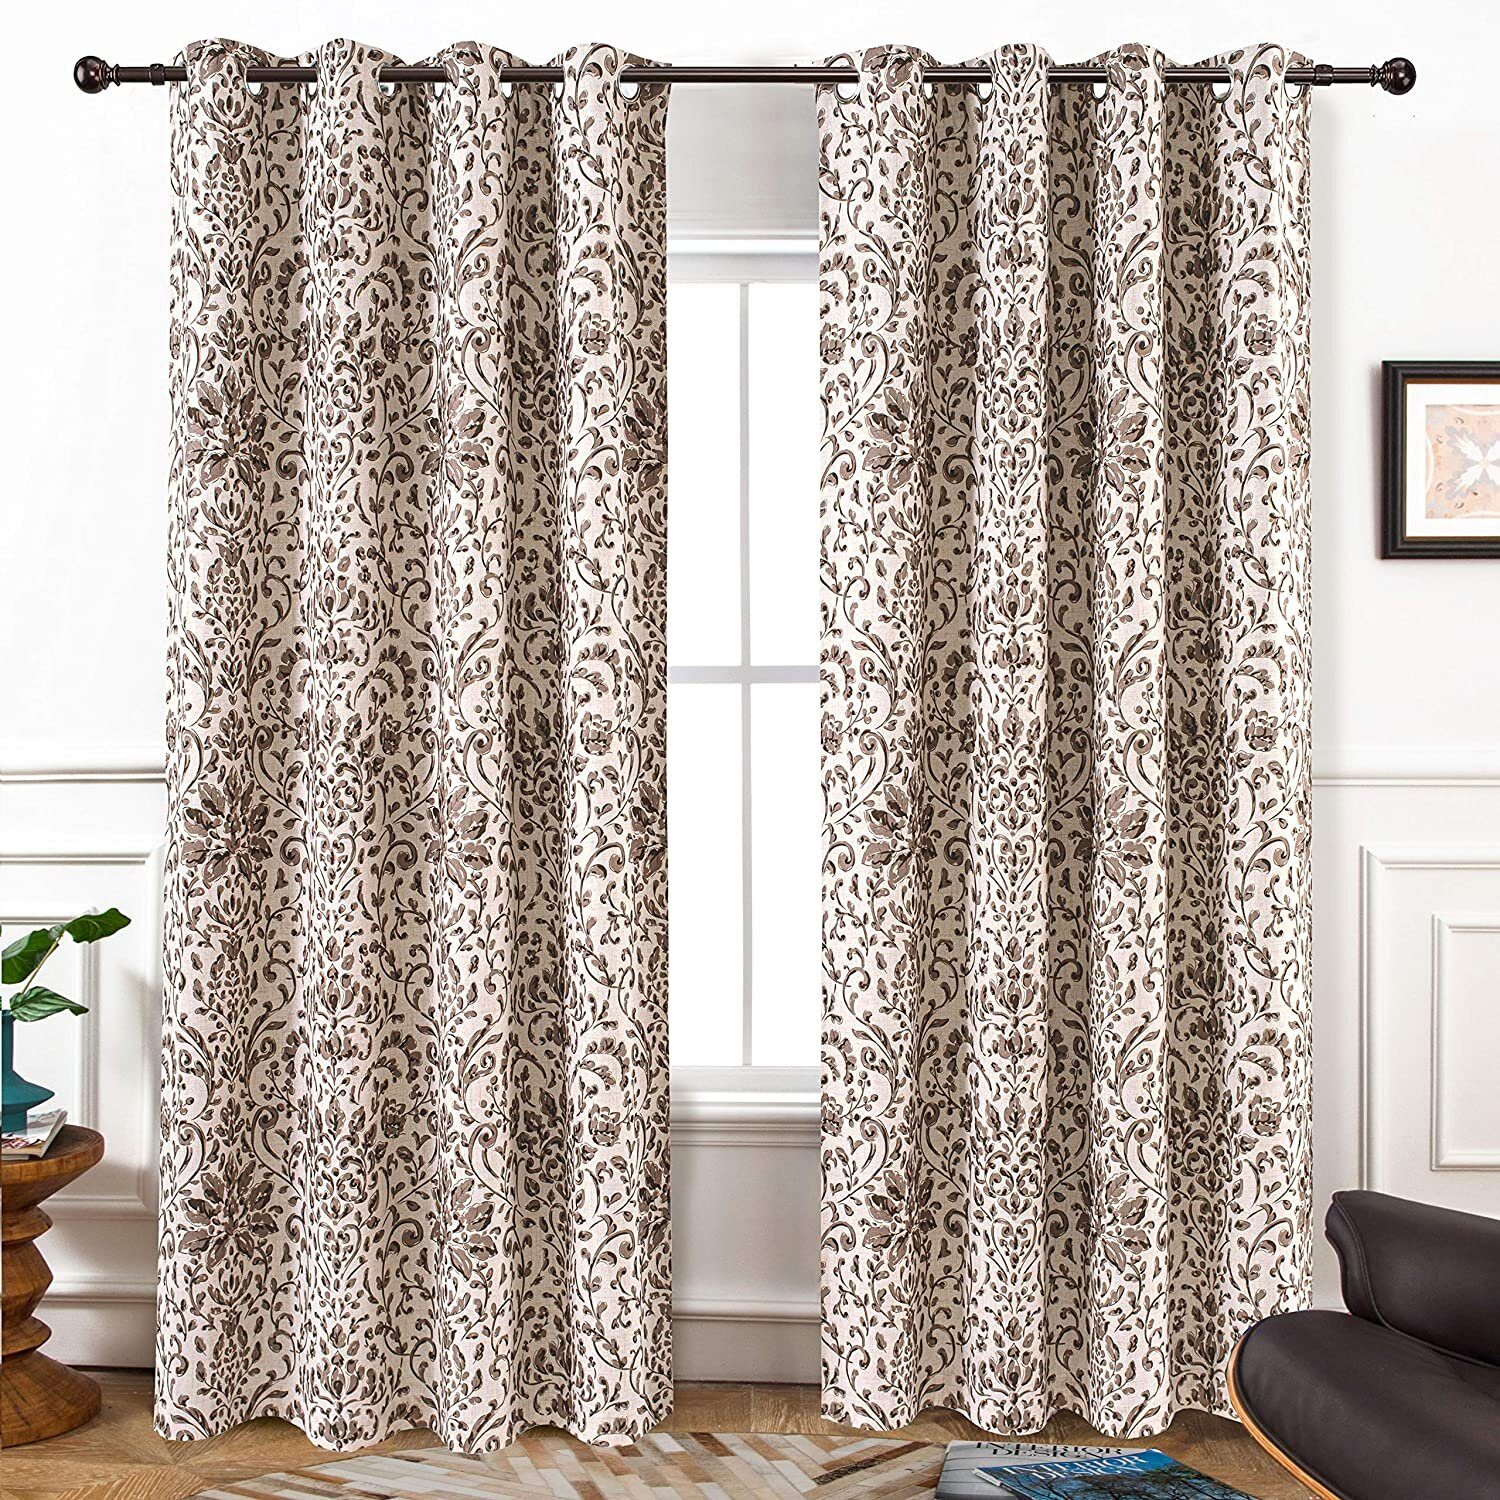 Floral Linen Curtains Drapes You Ll Love In 2021 Wayfair